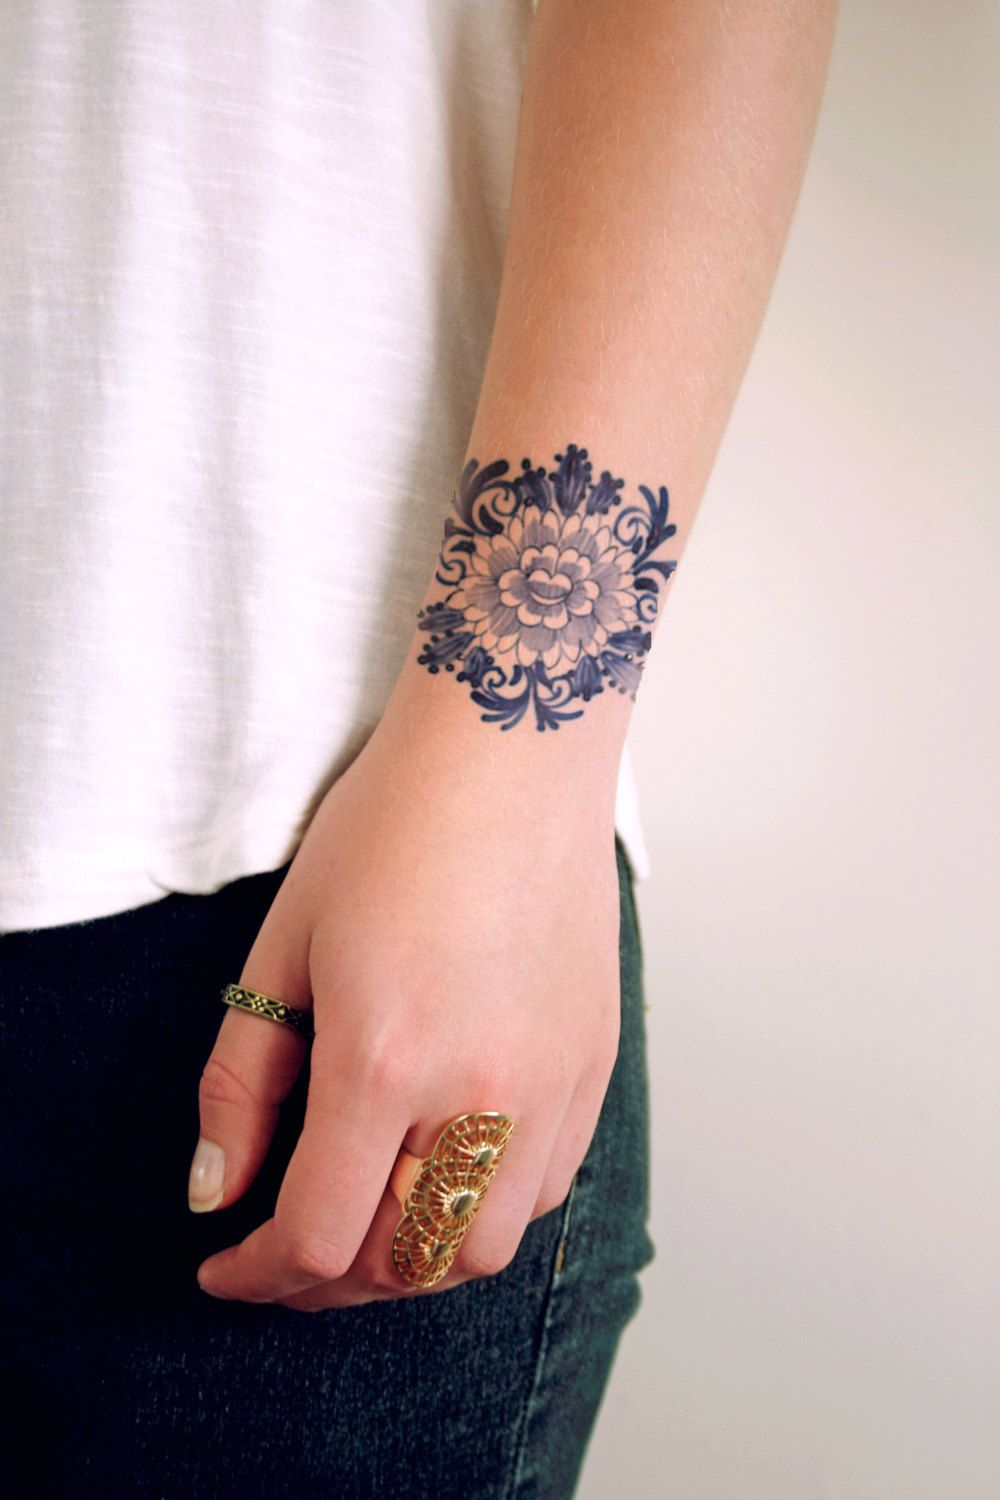 Tattoo Mädchen Delft Blue Temporary Tattoo Floral Temporary Tattoo Flower